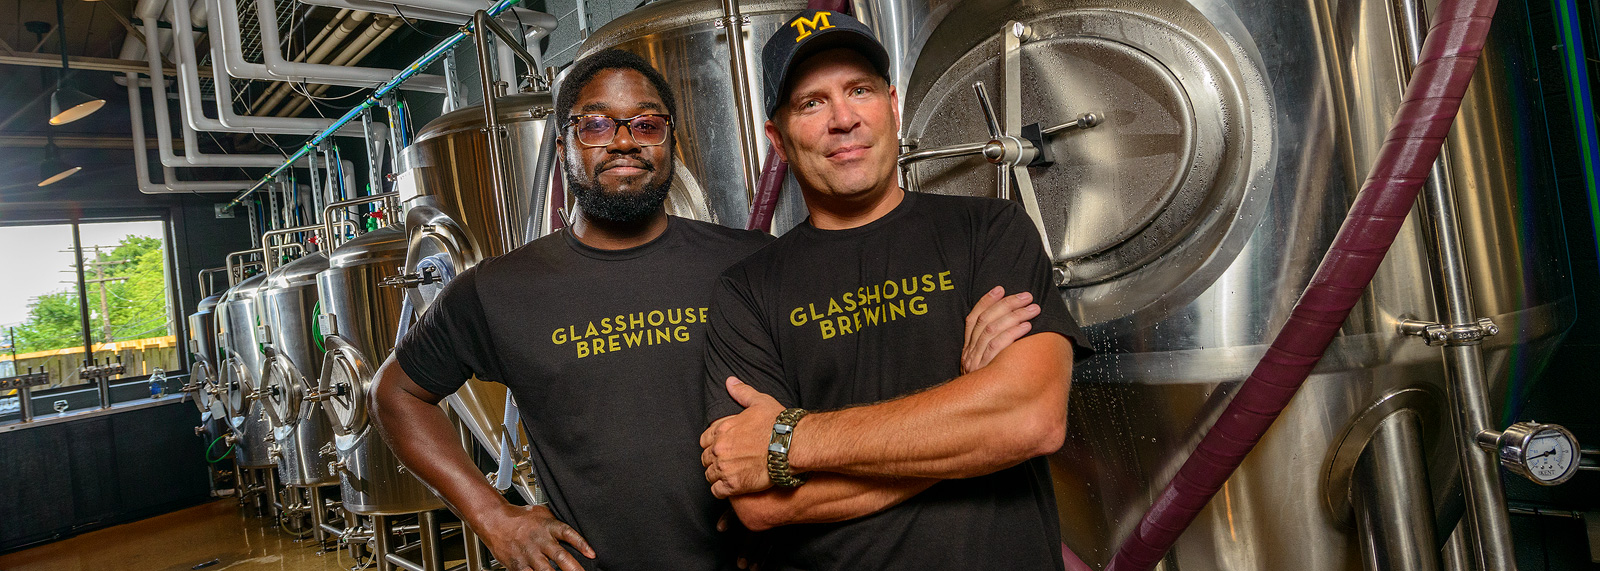 Kuma Ofori-Mensa and Brent Payeur at Glasshouse Brewing